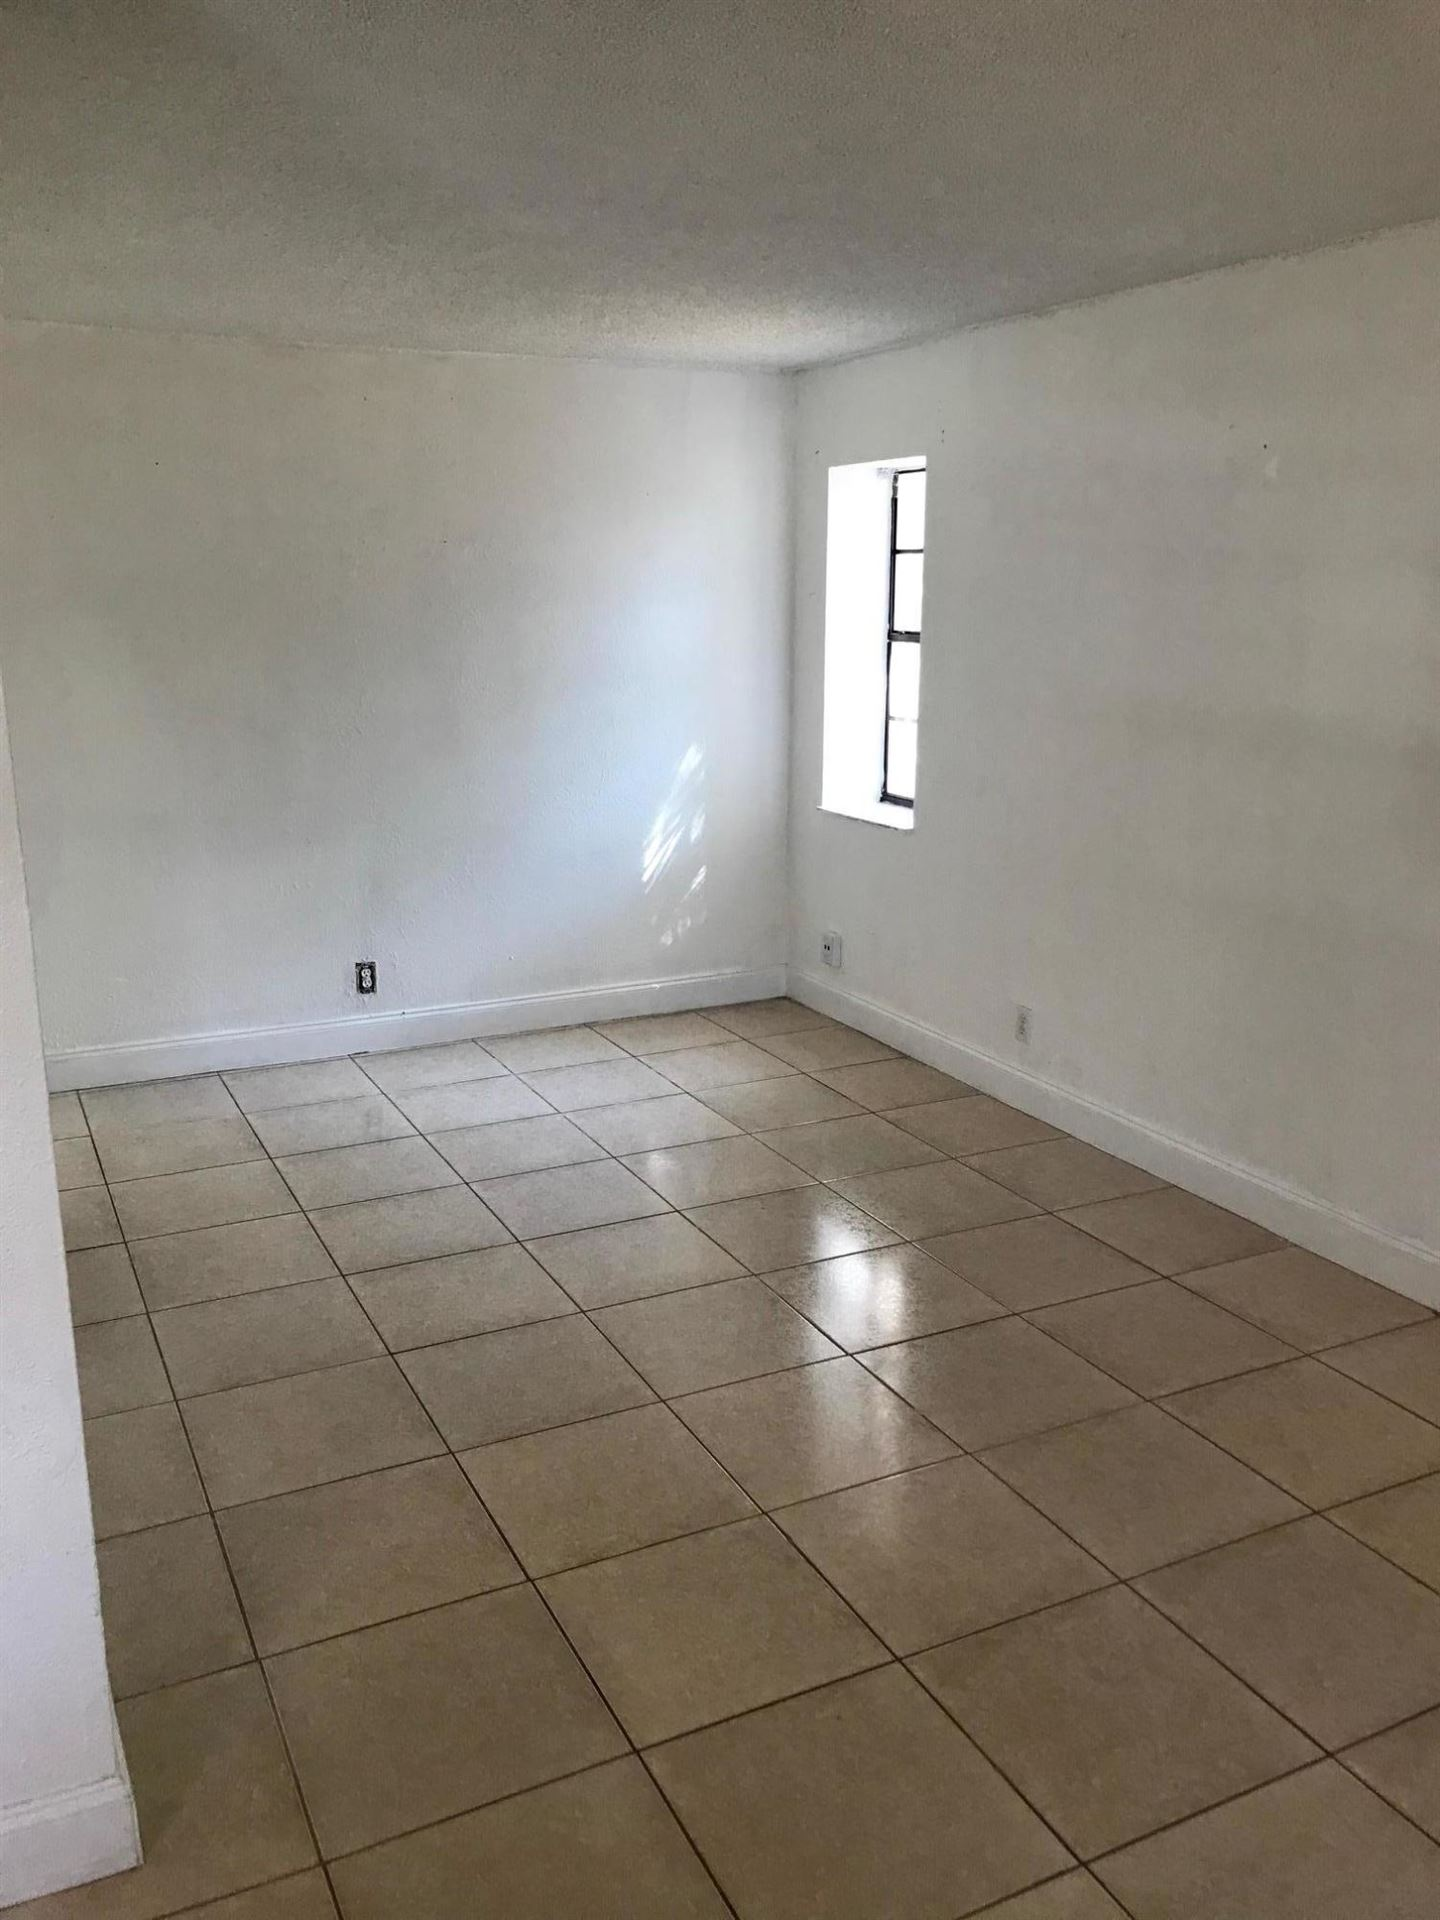 3760 NW 115th Avenue #1-4, Coral Springs, FL 33065 - #: RX-10656603